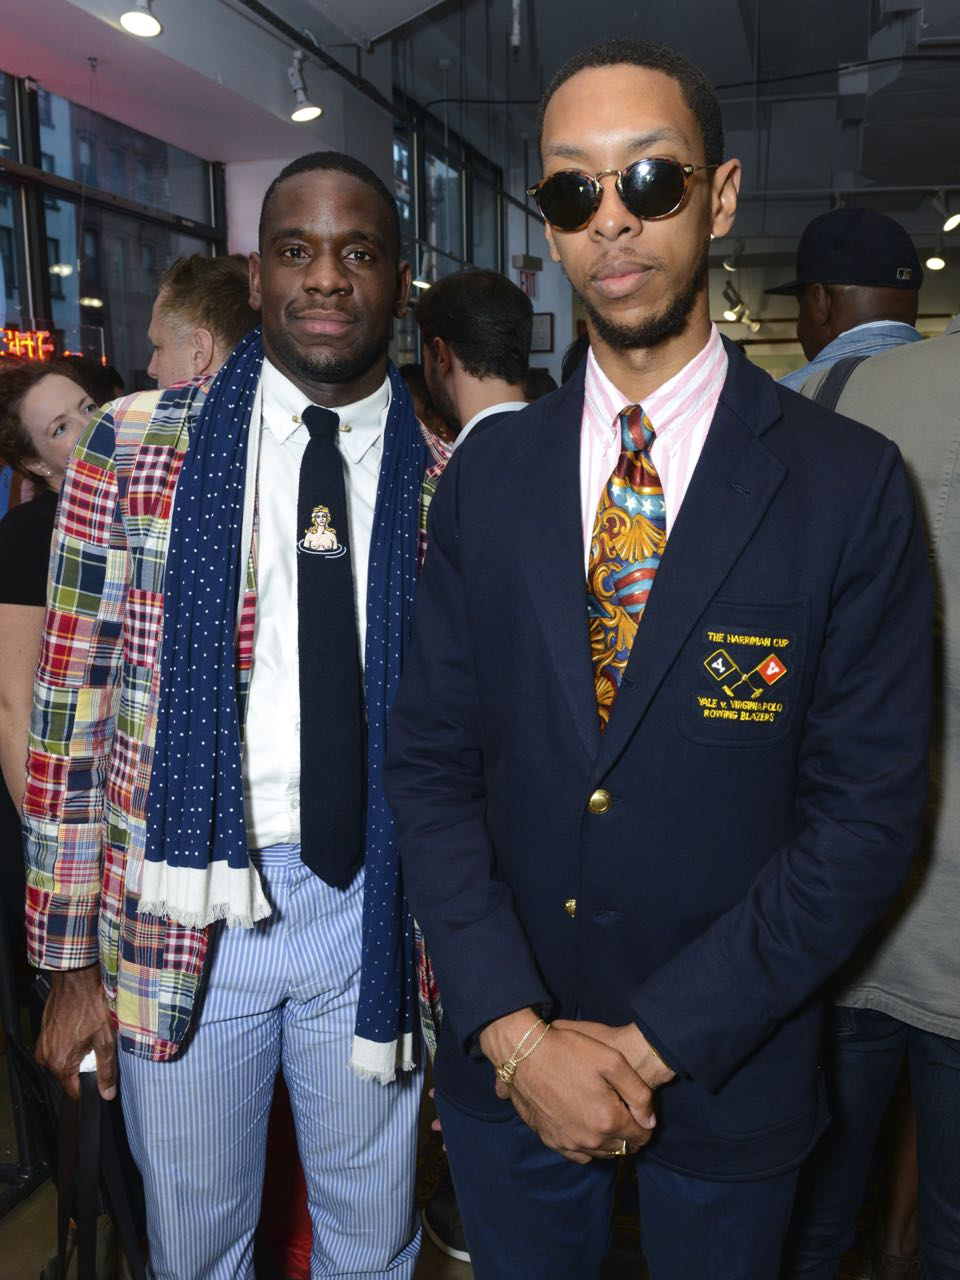 Live Crew: Rowing Blazers' NY Pop-Up Opening Party